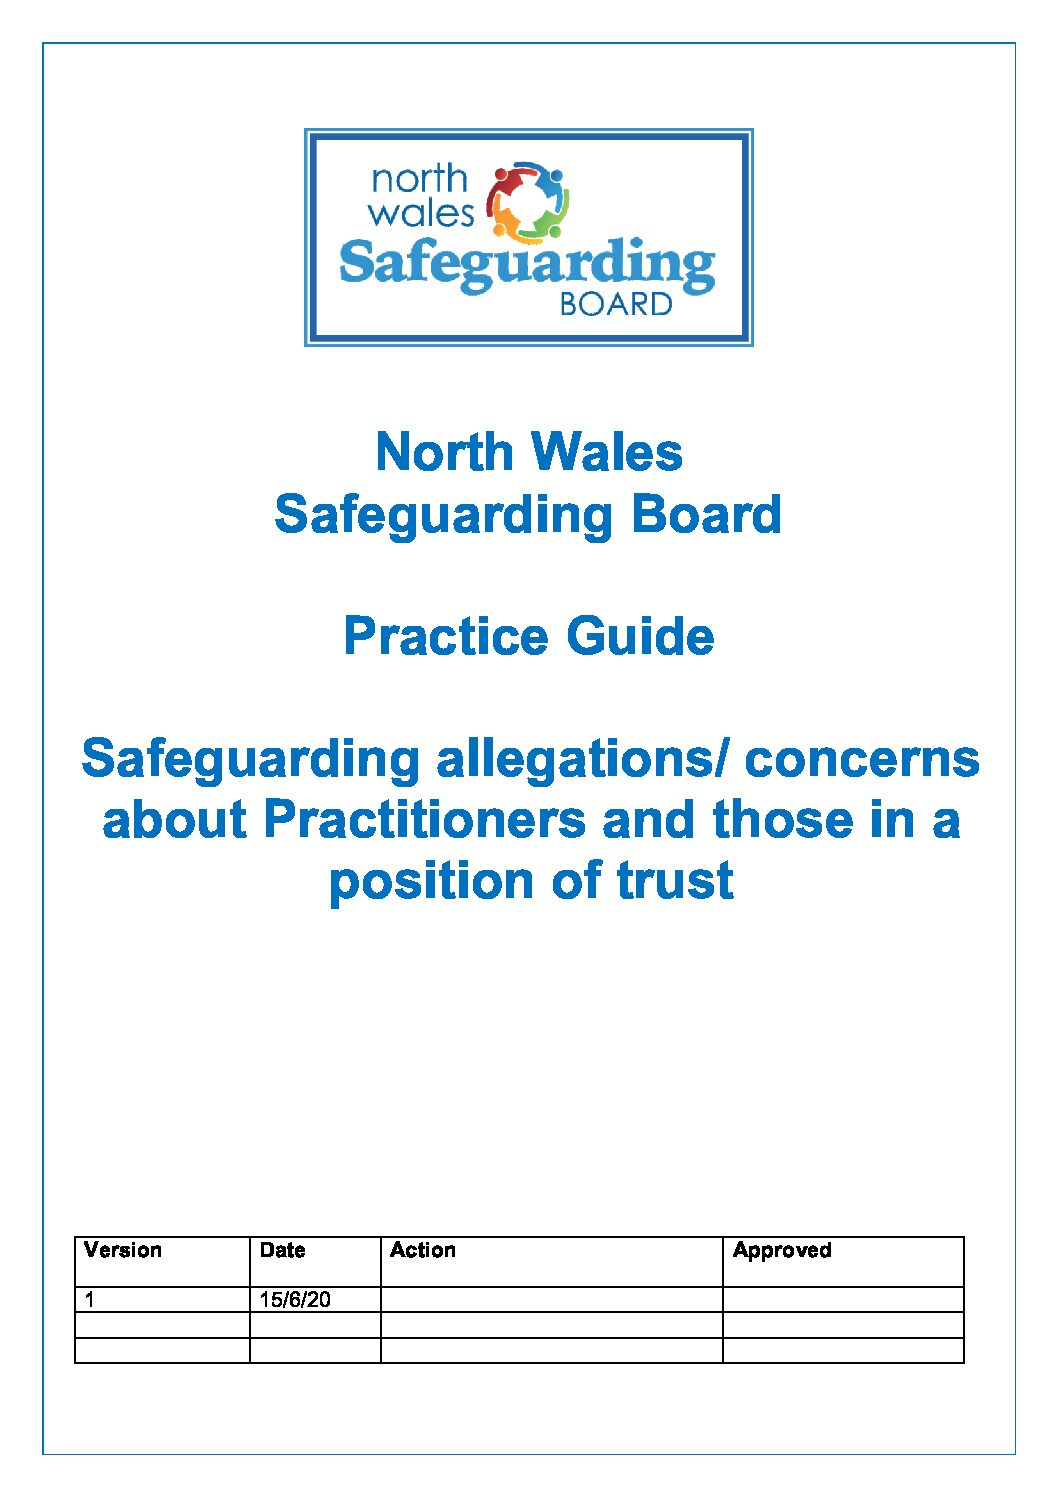 NWSB Safeguarding Allegations Concerns about Practitioners and Those in a position of trust